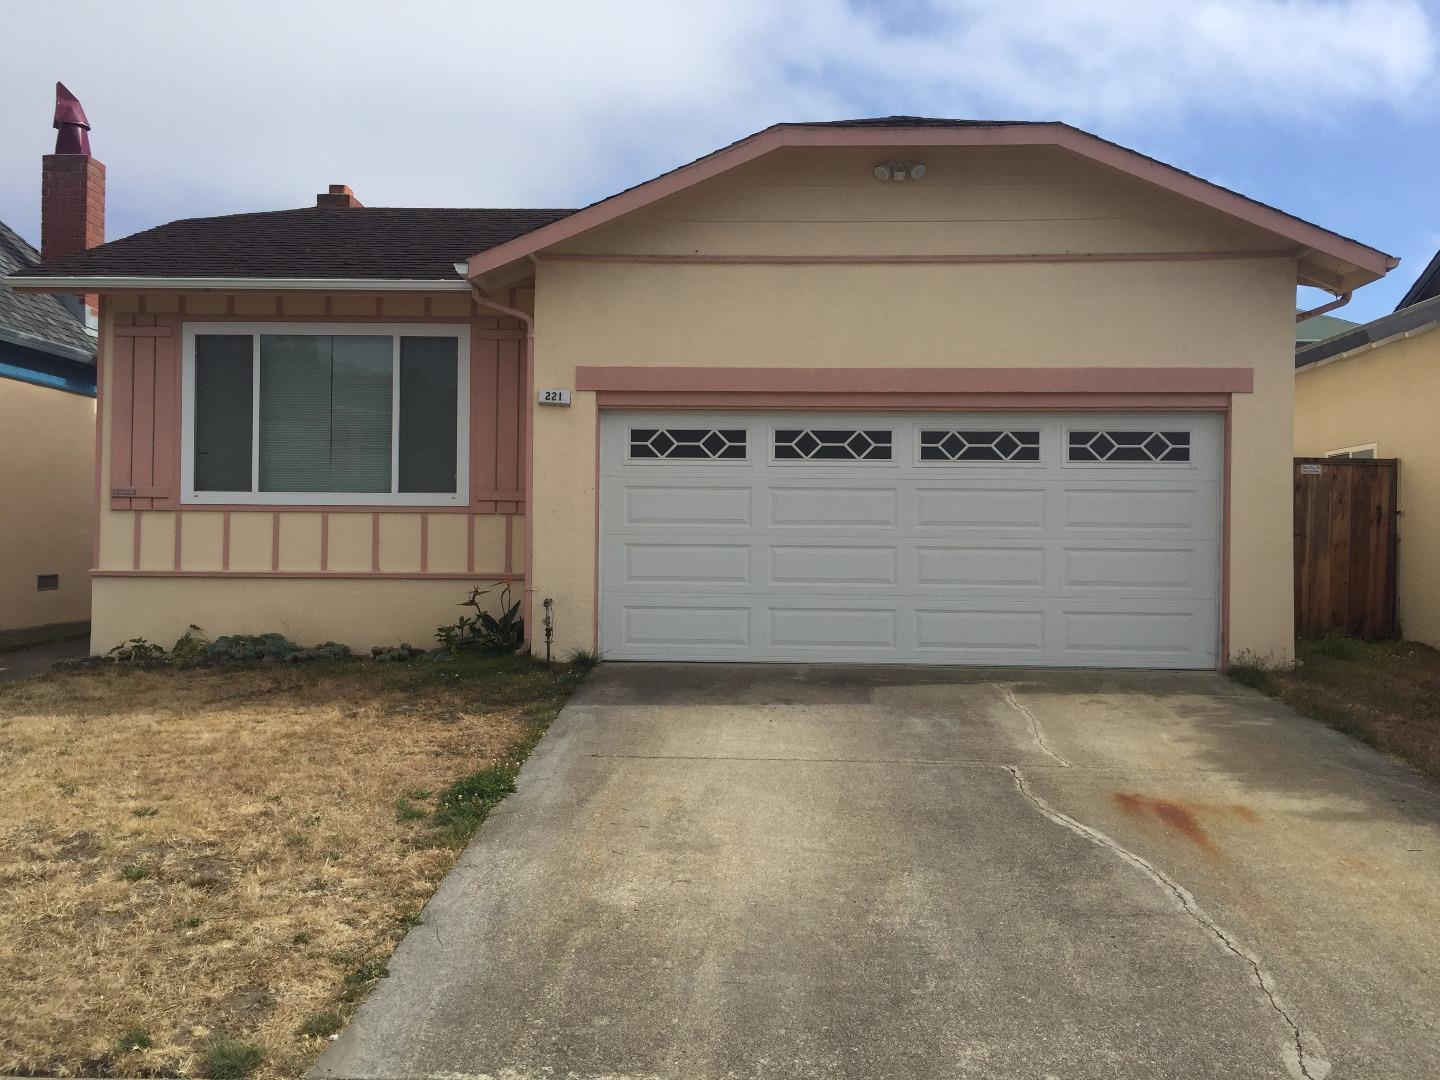 Additional photo for property listing at 221 Forest Park Drive  Pacifica, Kalifornien 94044 Vereinigte Staaten